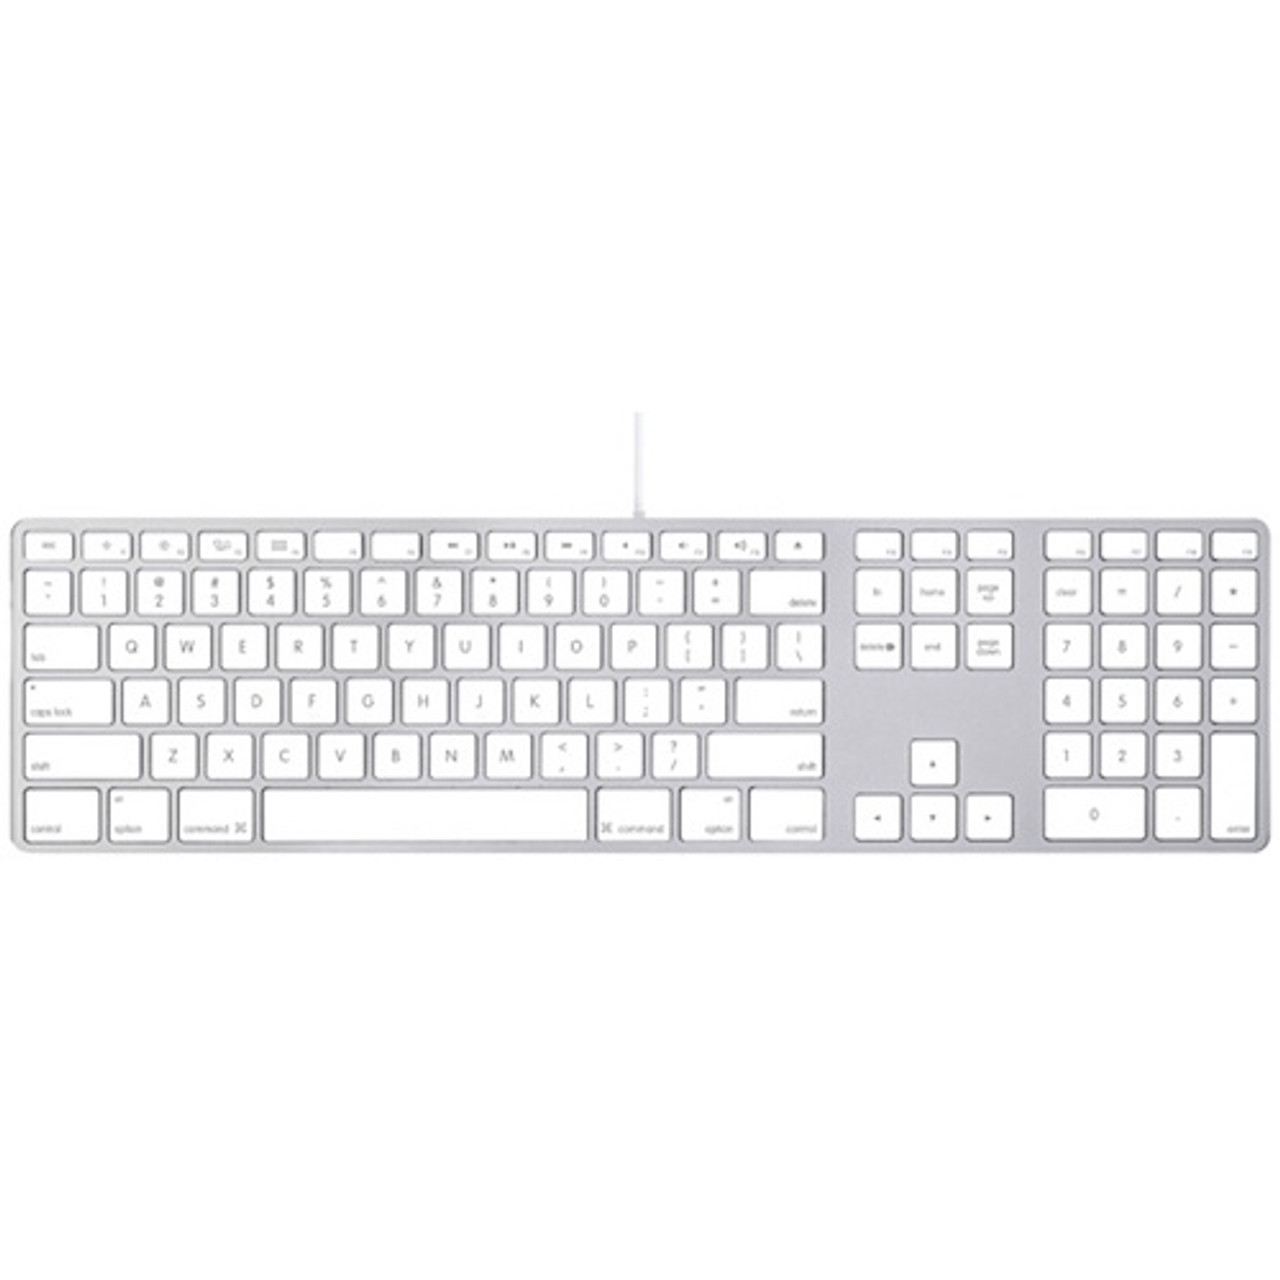 b8d86847c79 Apple Aluminum Keyboard with Numeric Keypad MB110LL/B - Good